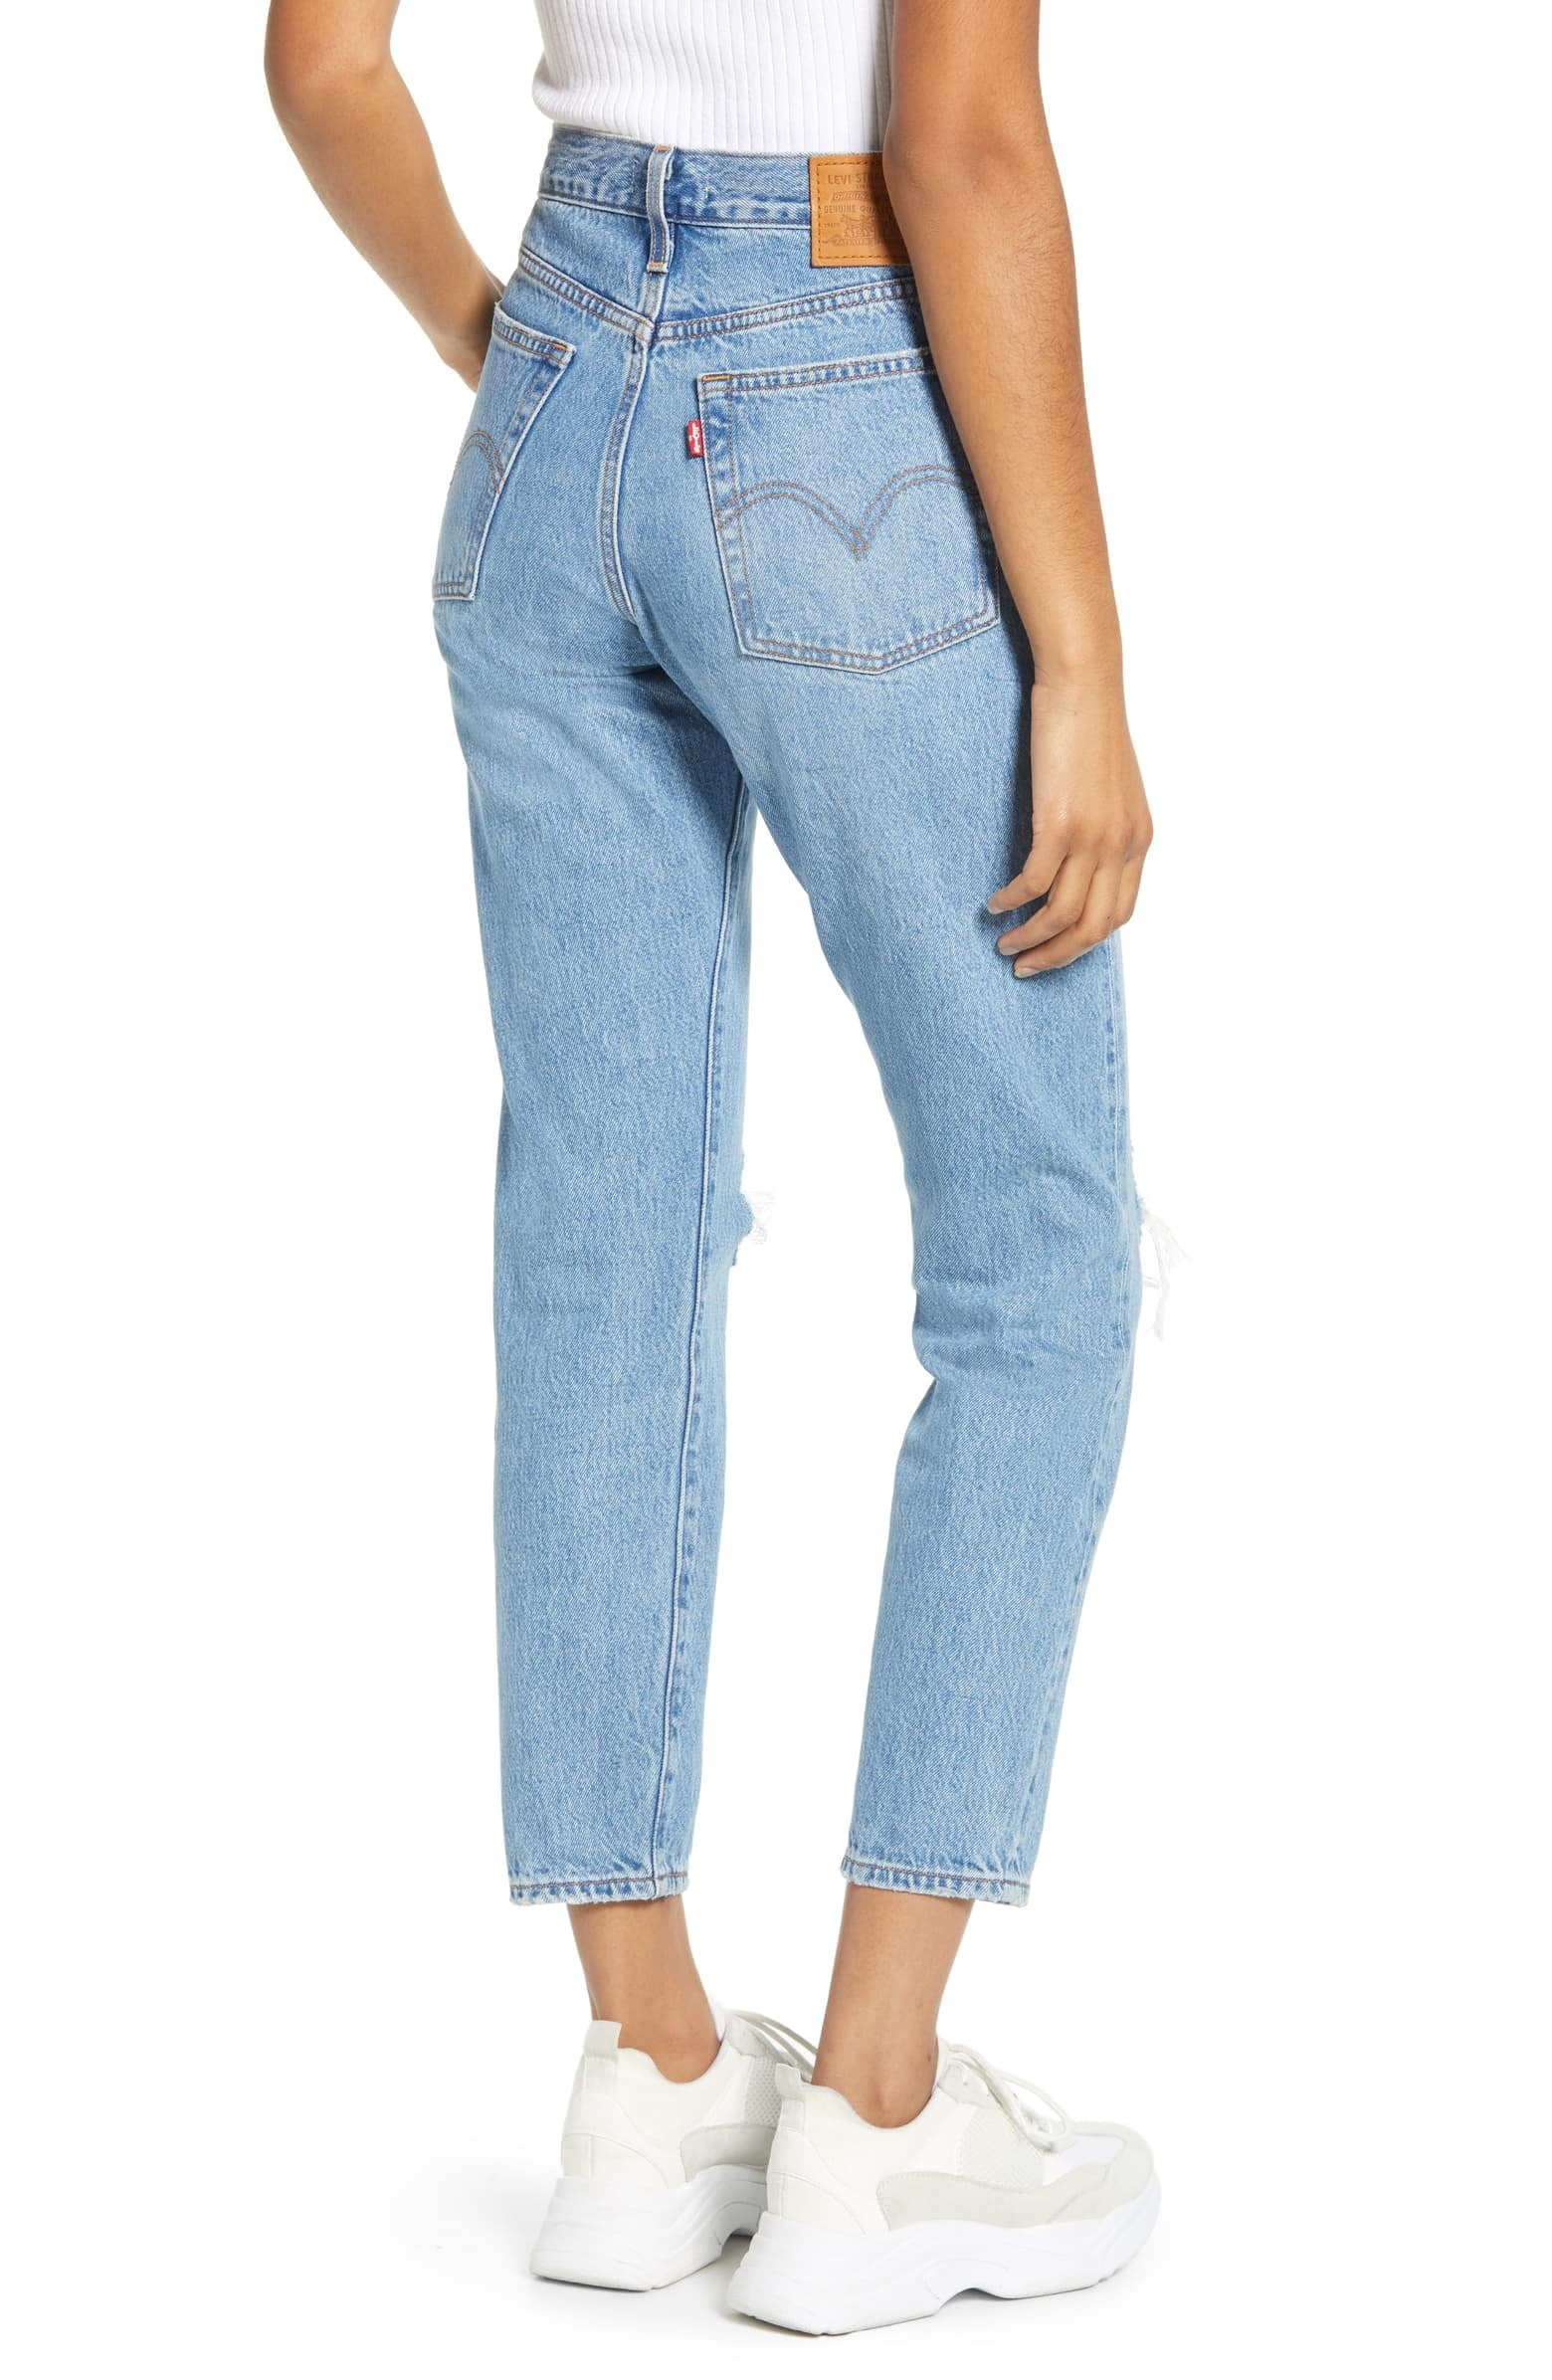 Best Jeans For All Women 2020 Guide Popsugar Fashion Our skinniest cut is tightly contoured, from the waist. best jeans for all women 2020 guide